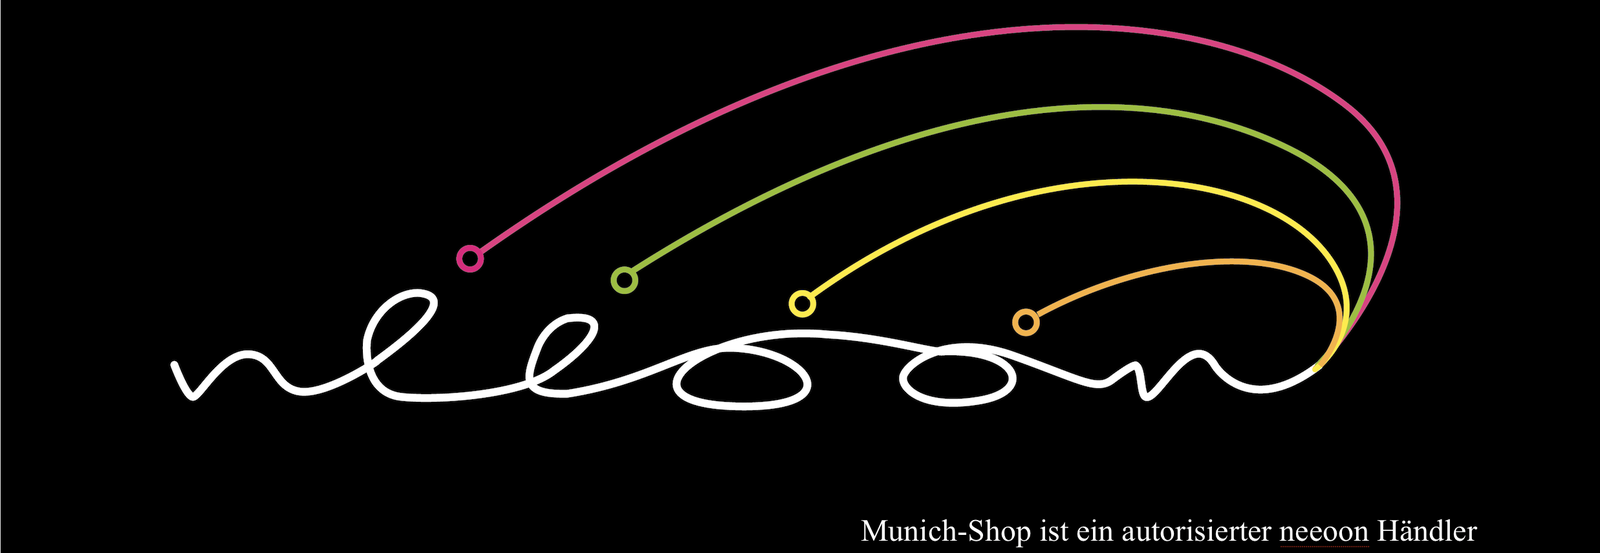 munich-shop